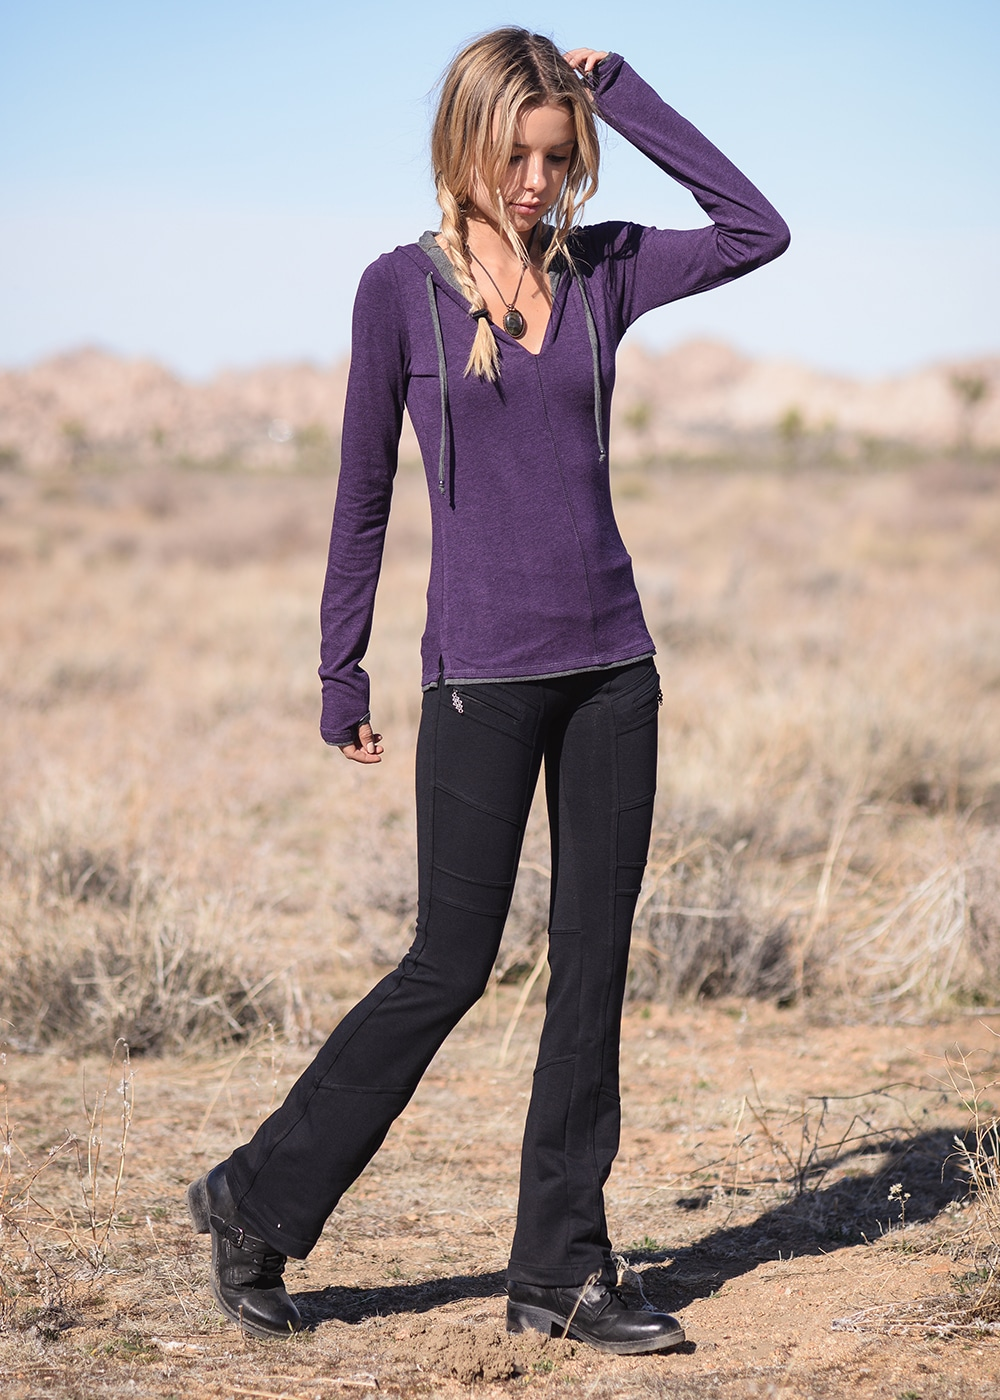 Bamboo and Organic Cotton Diversity Tee in Purple by Nomads Hemp Wear Full Body